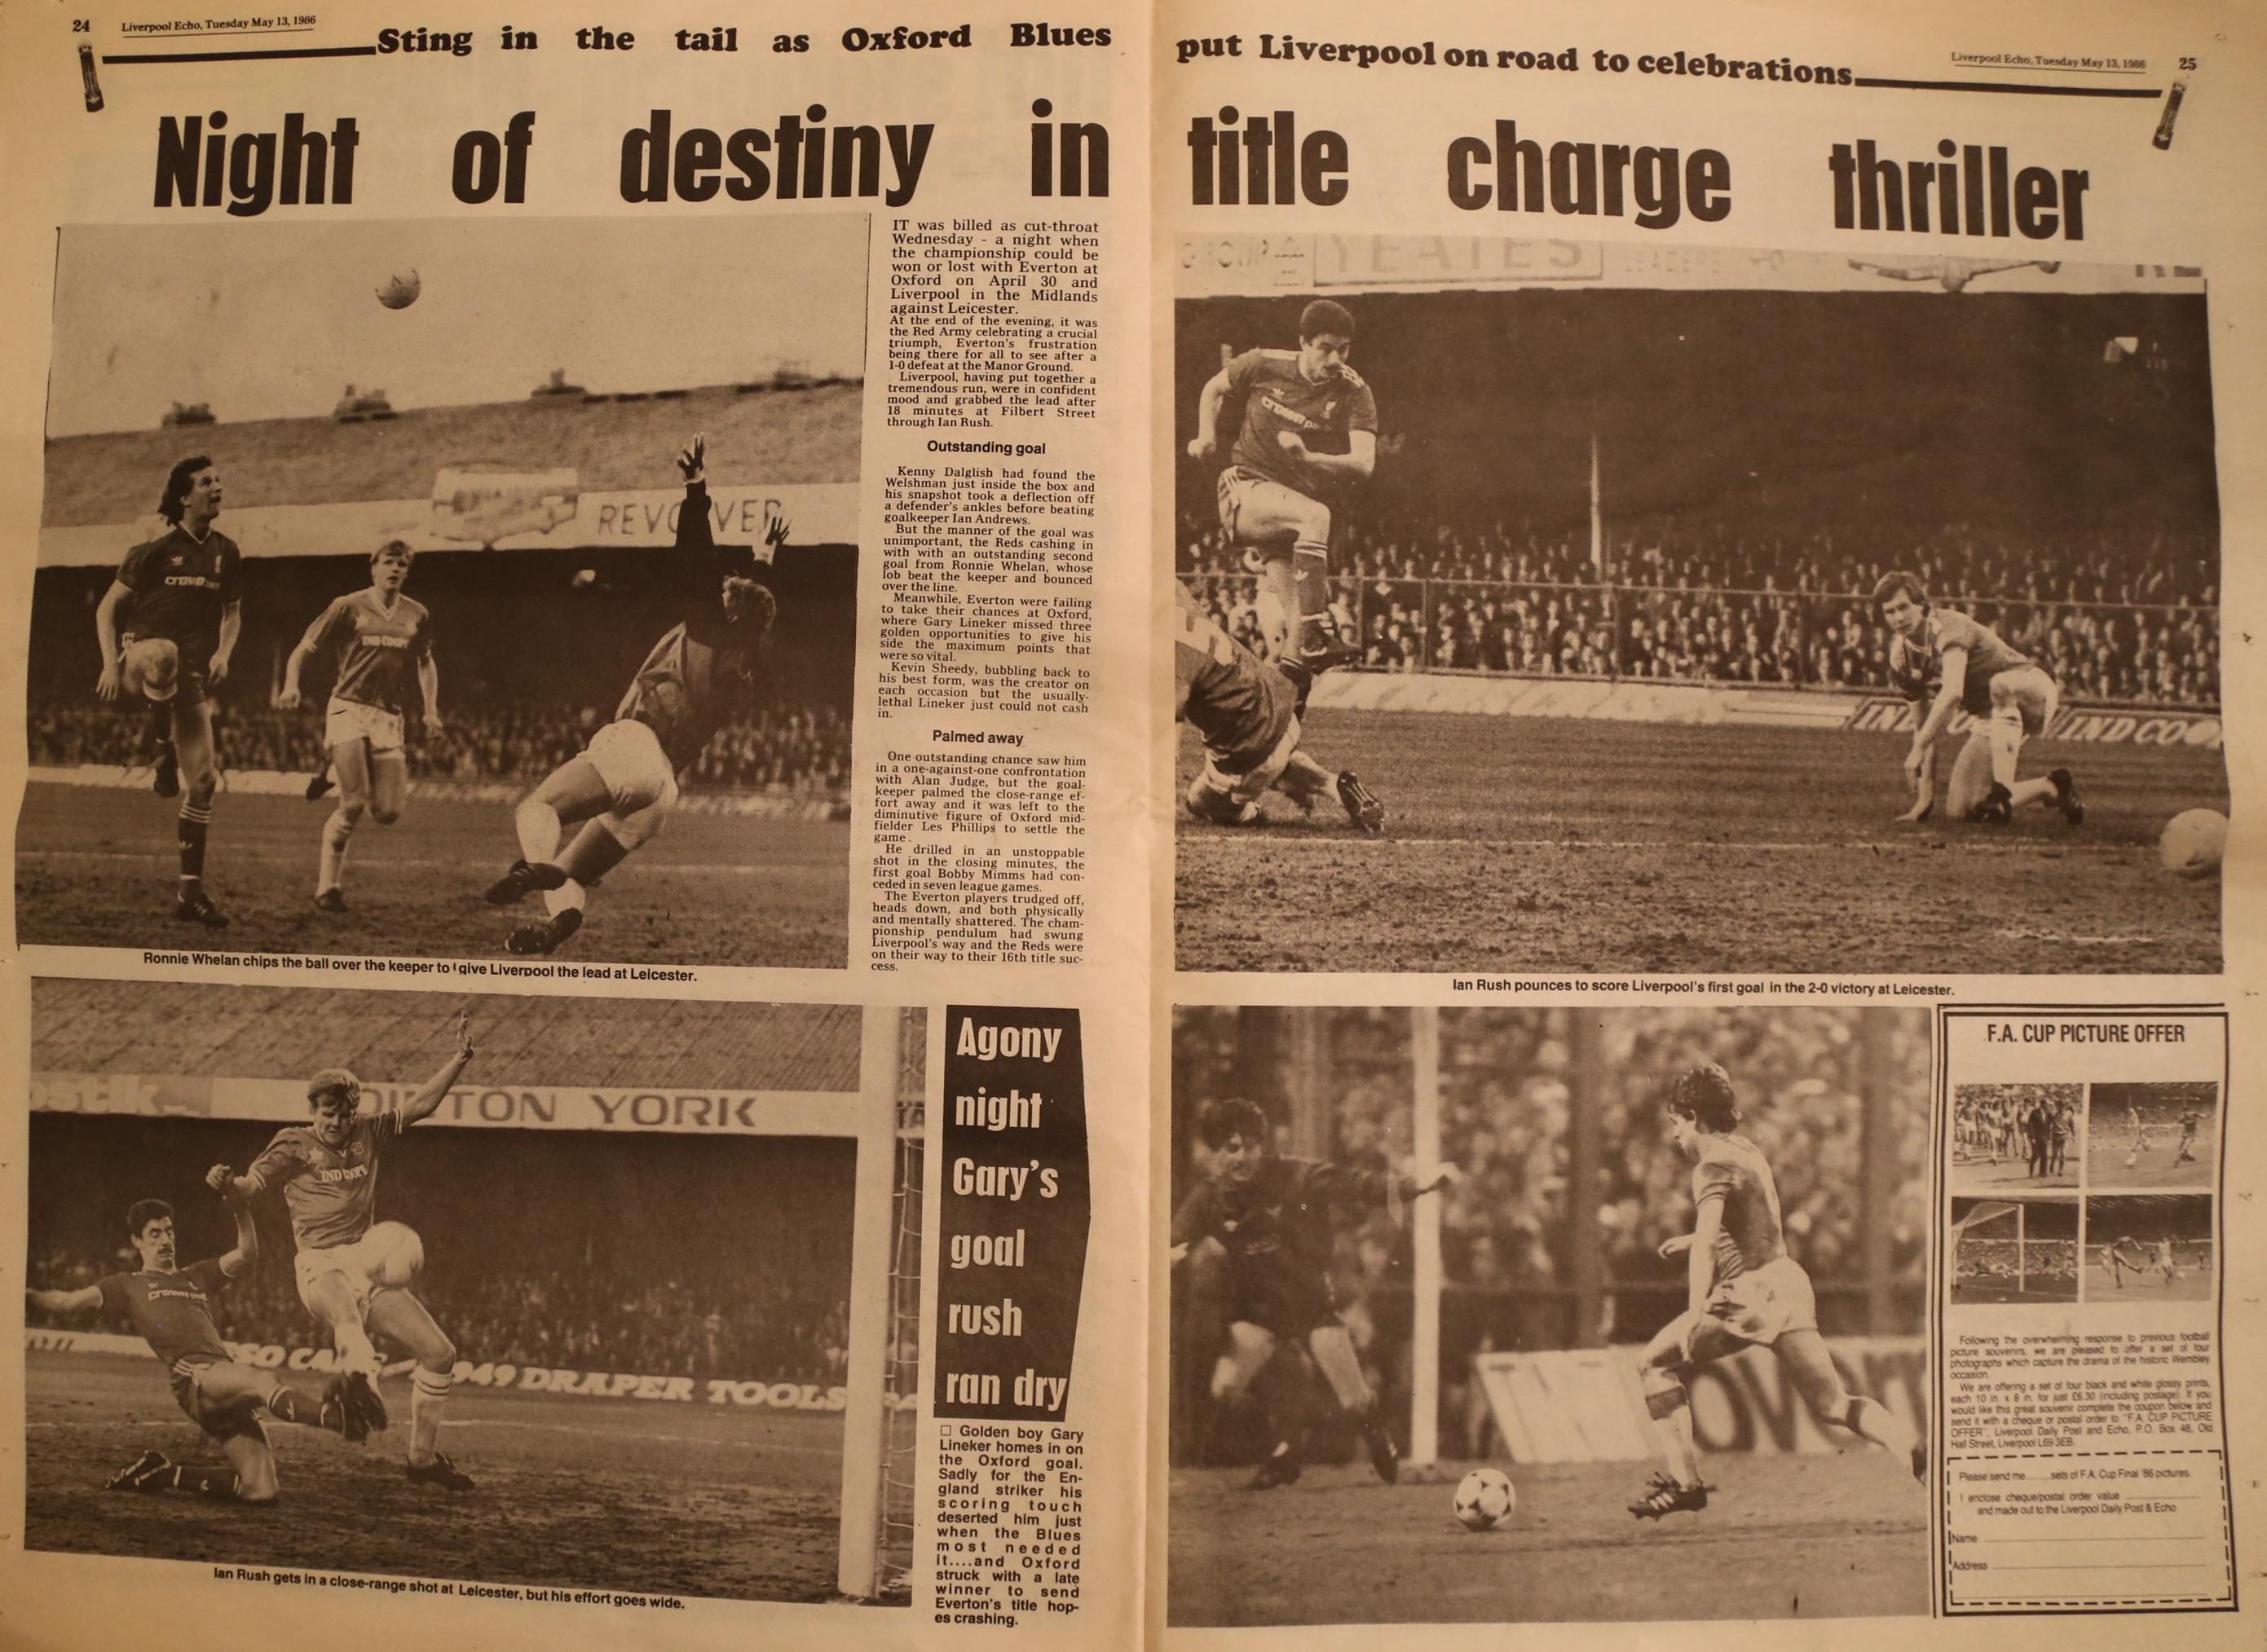 Night of destiny in title charge thriller - 30 April 1986